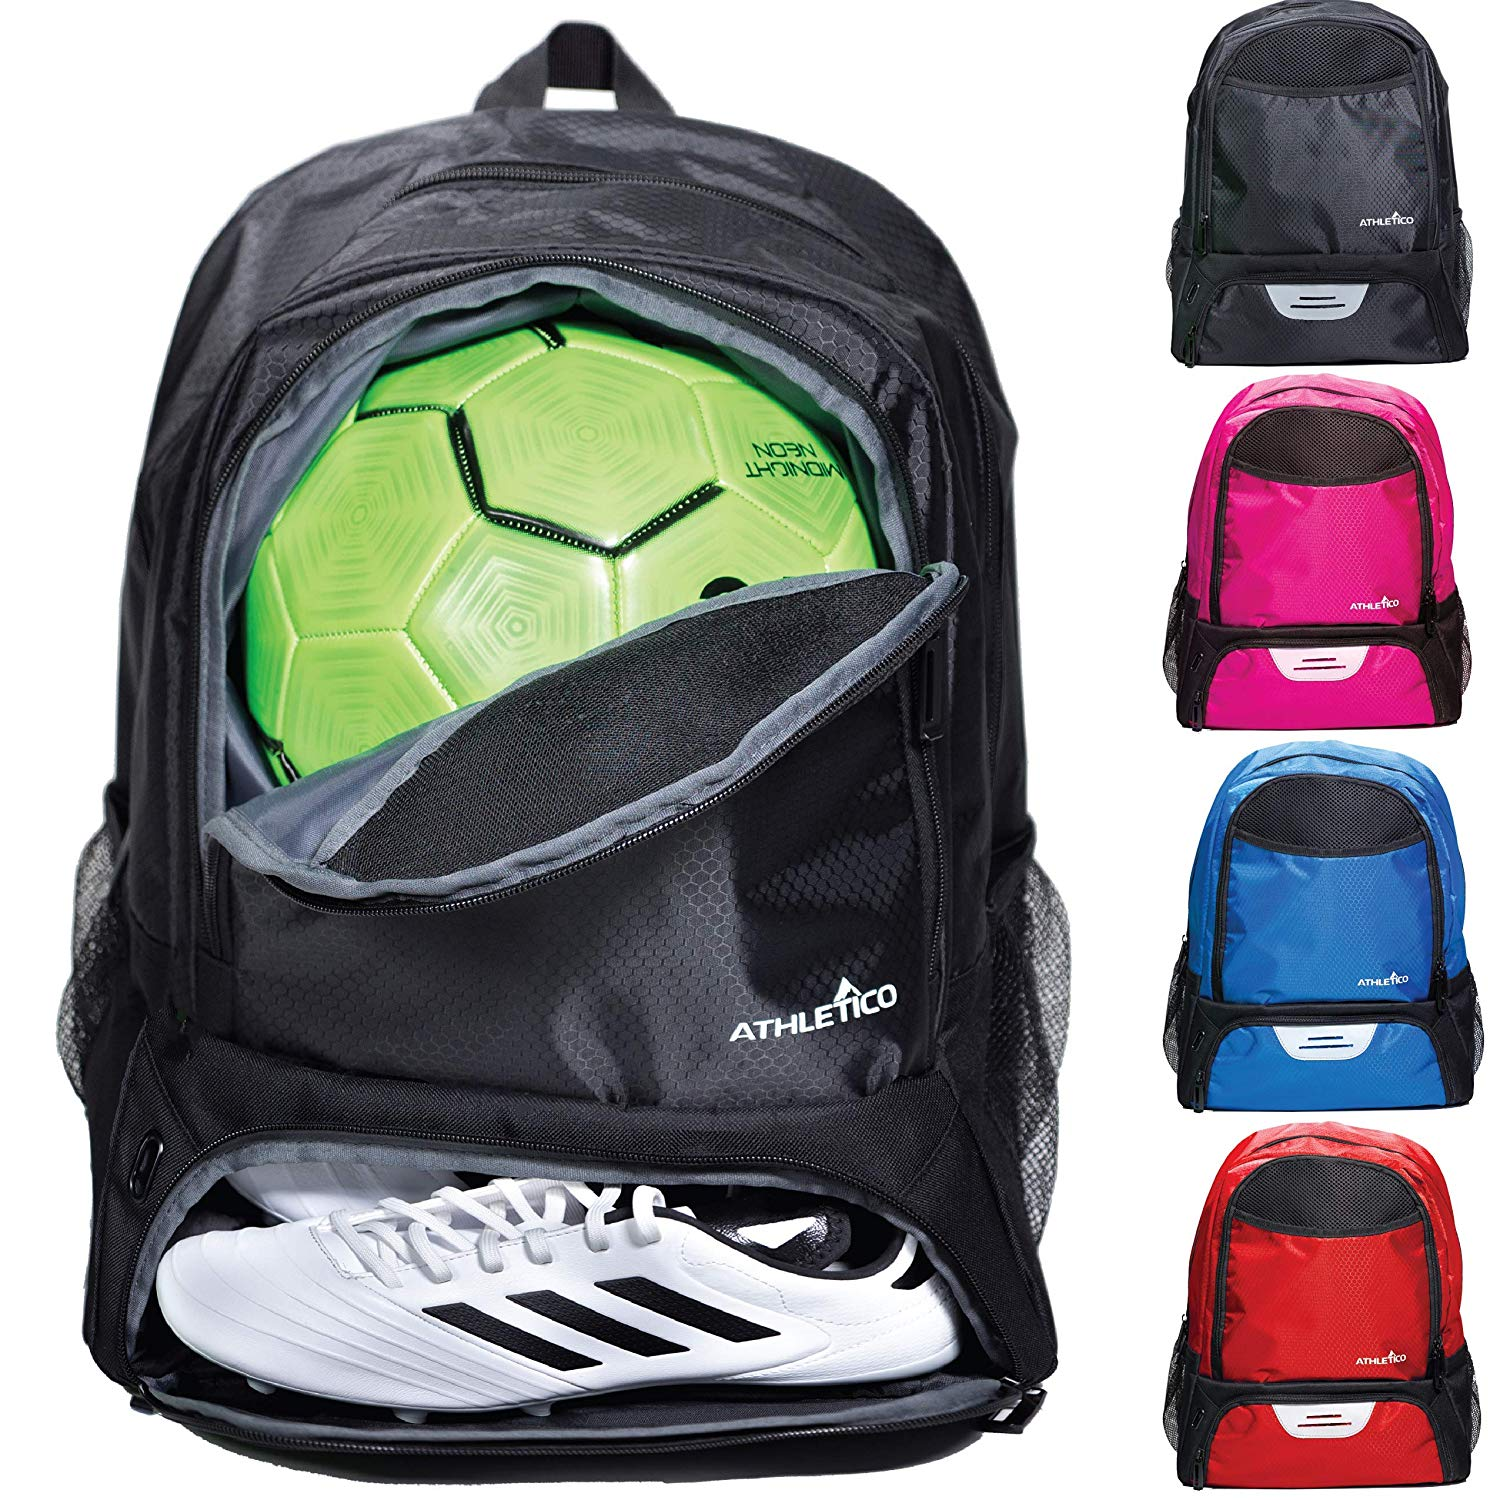 Athletico Youth Soccer Bag- Soccer Backpack & Bags for Basketball, Volleyball & Football